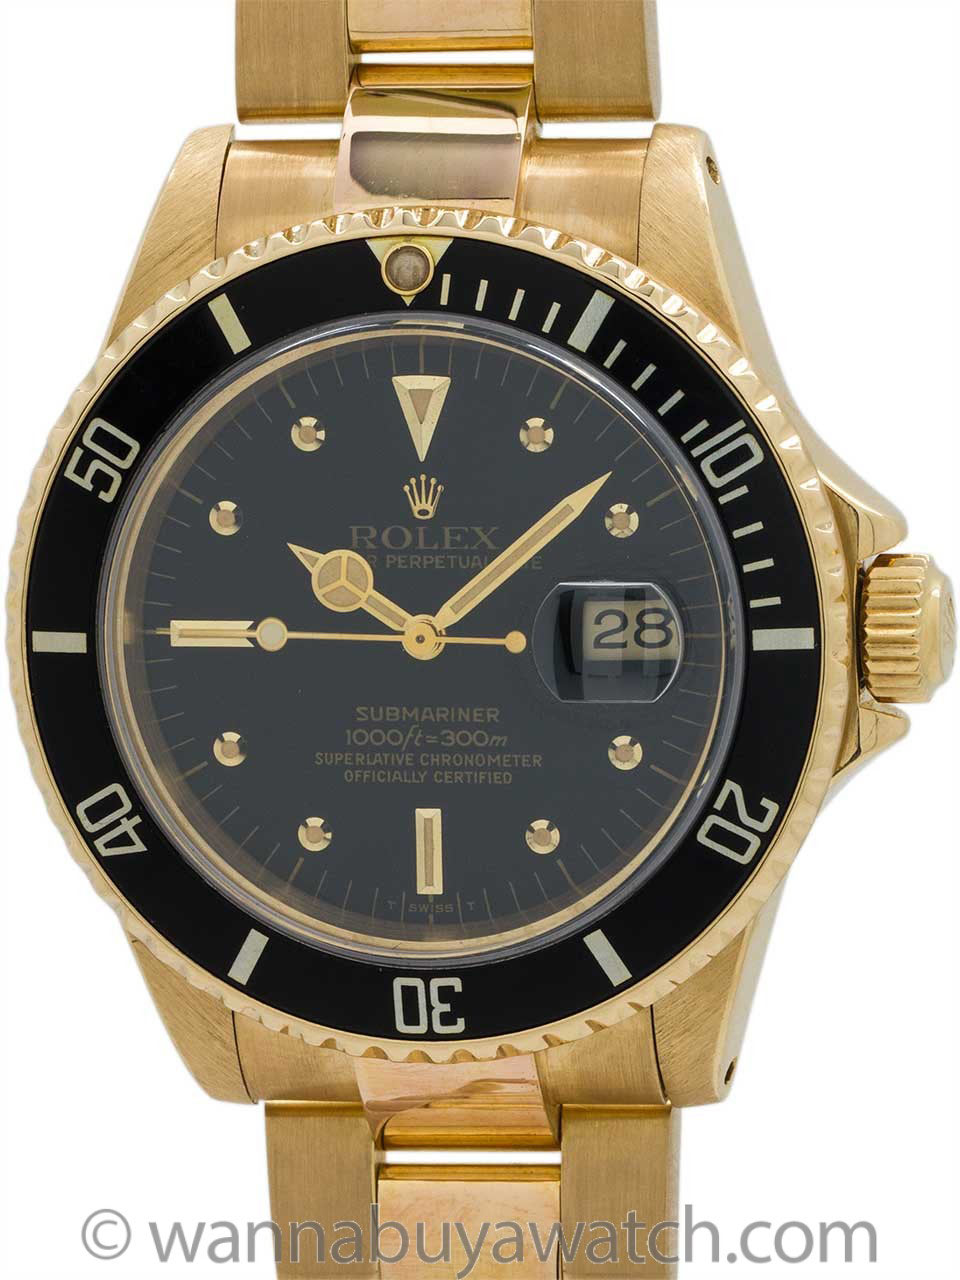 Rolex Submariner ref 16808 18K YG Transitional circa 1980